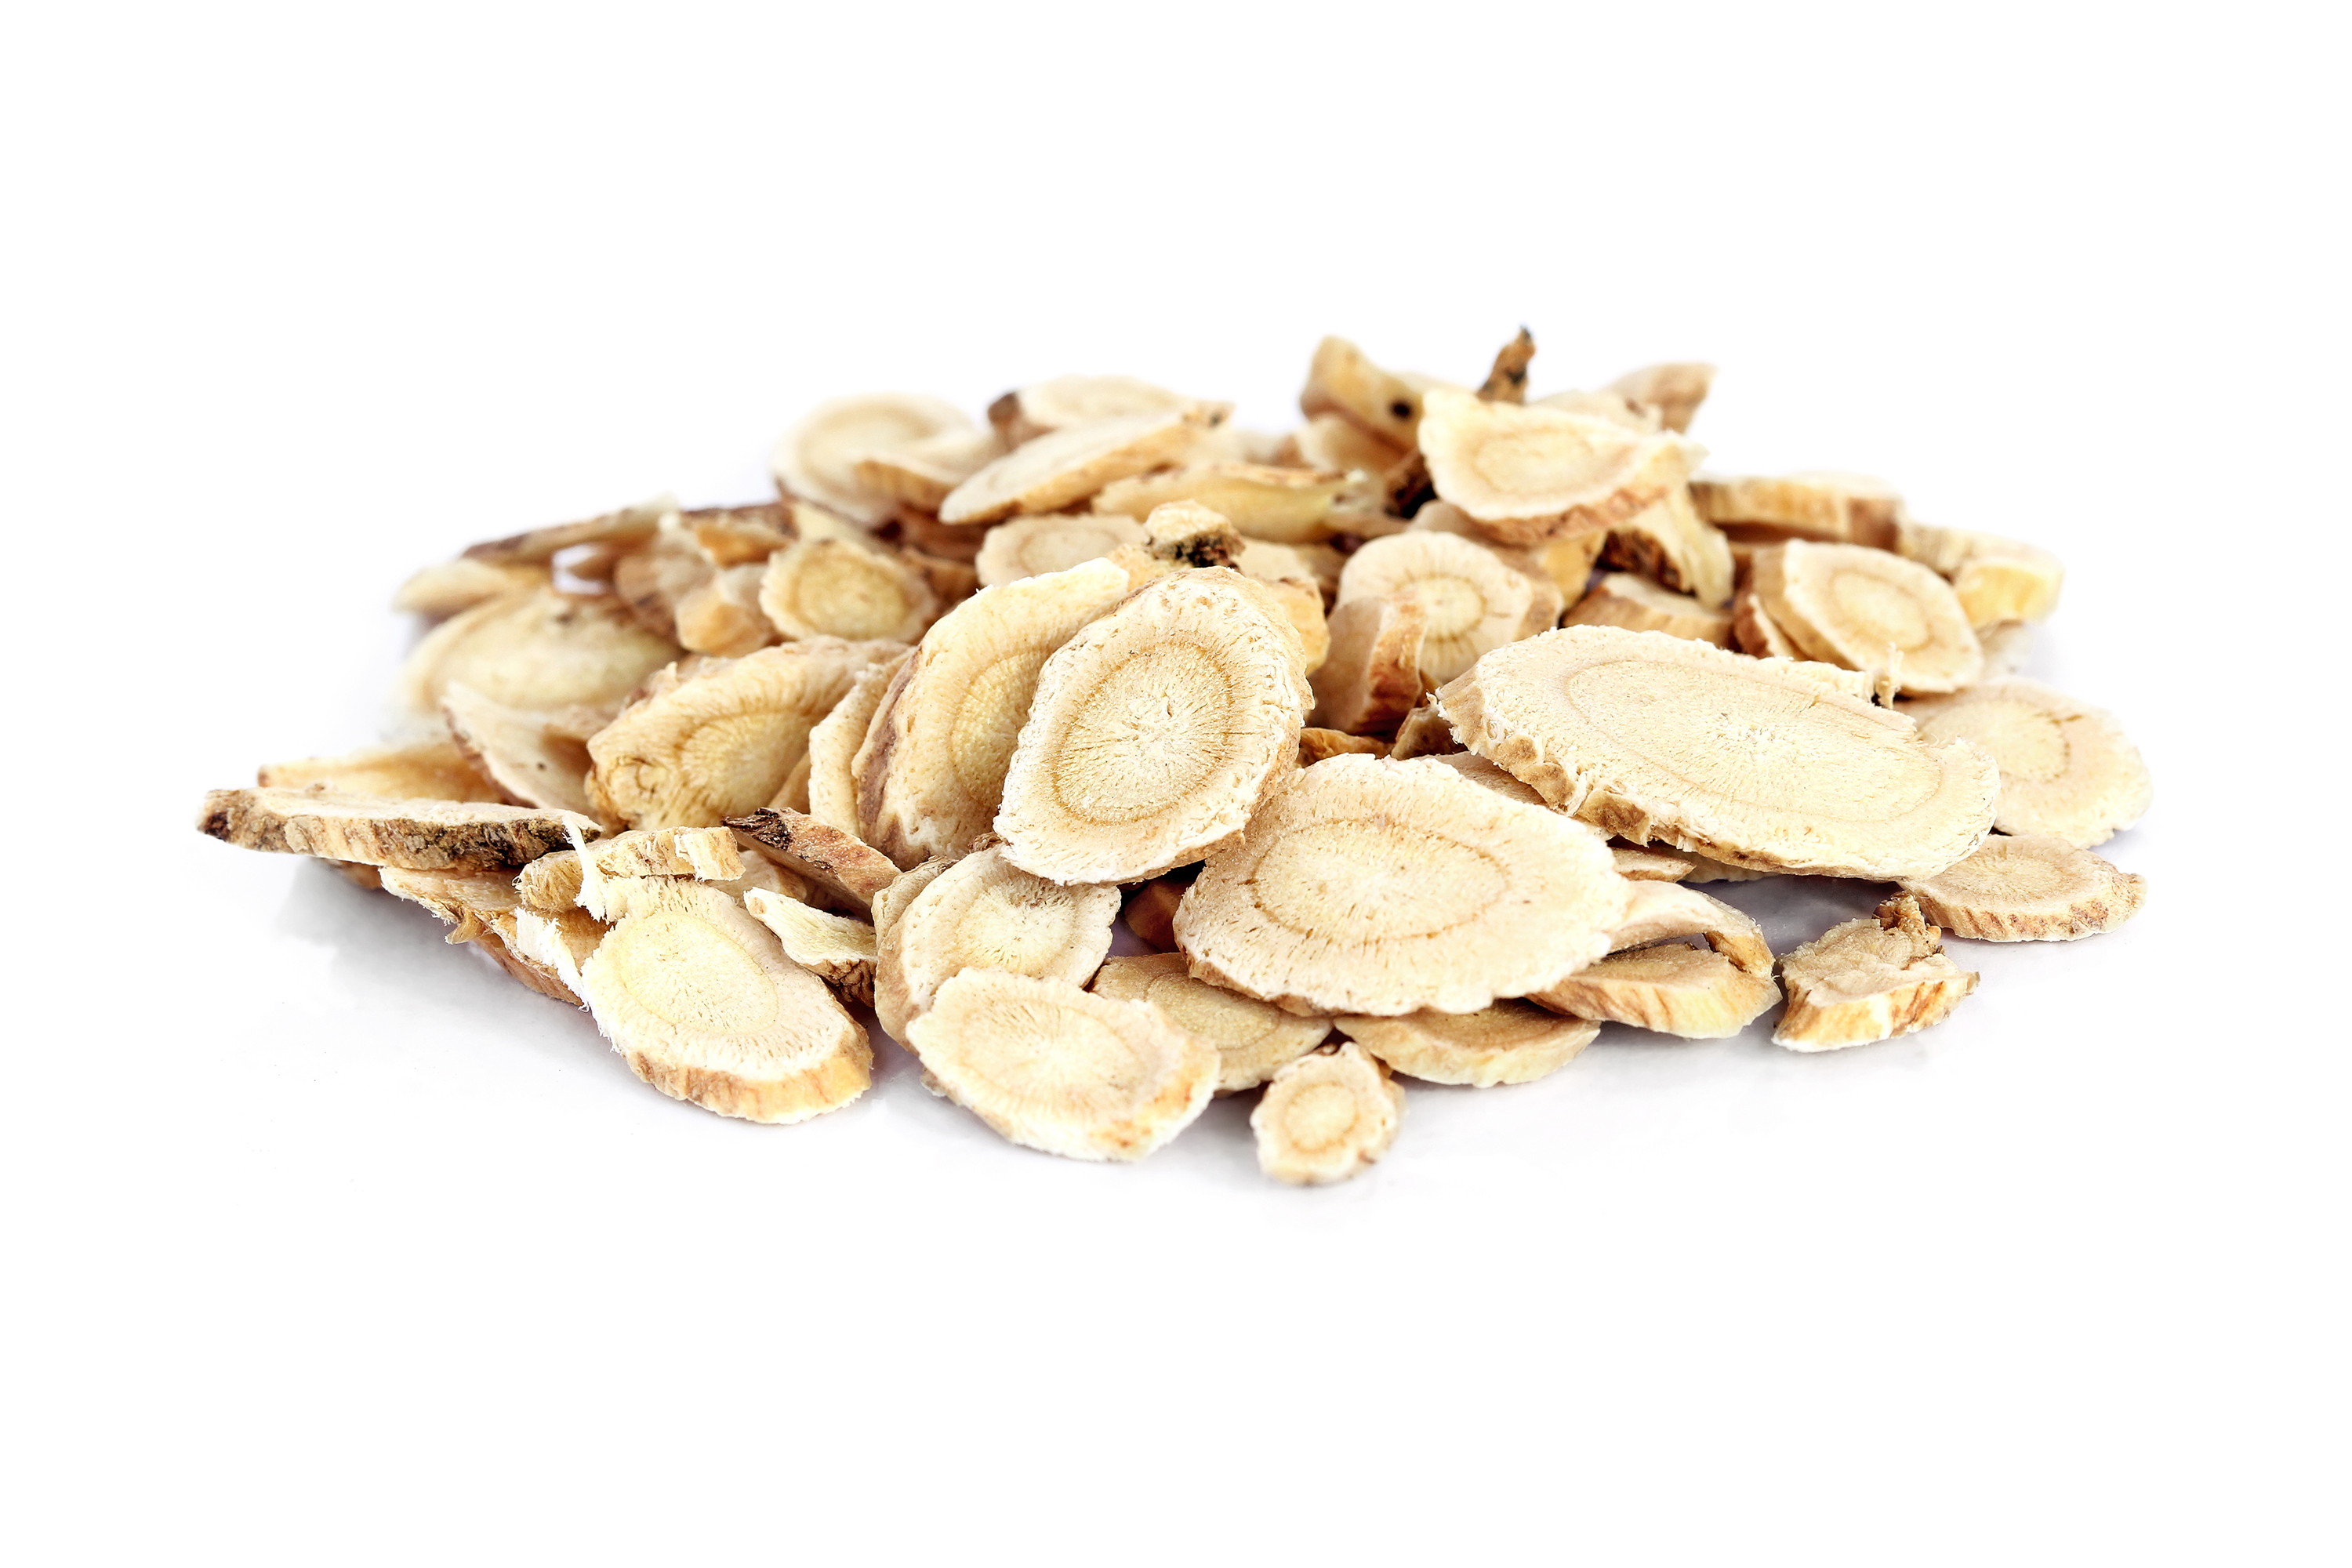 Astragalus Root Herbal Medicine